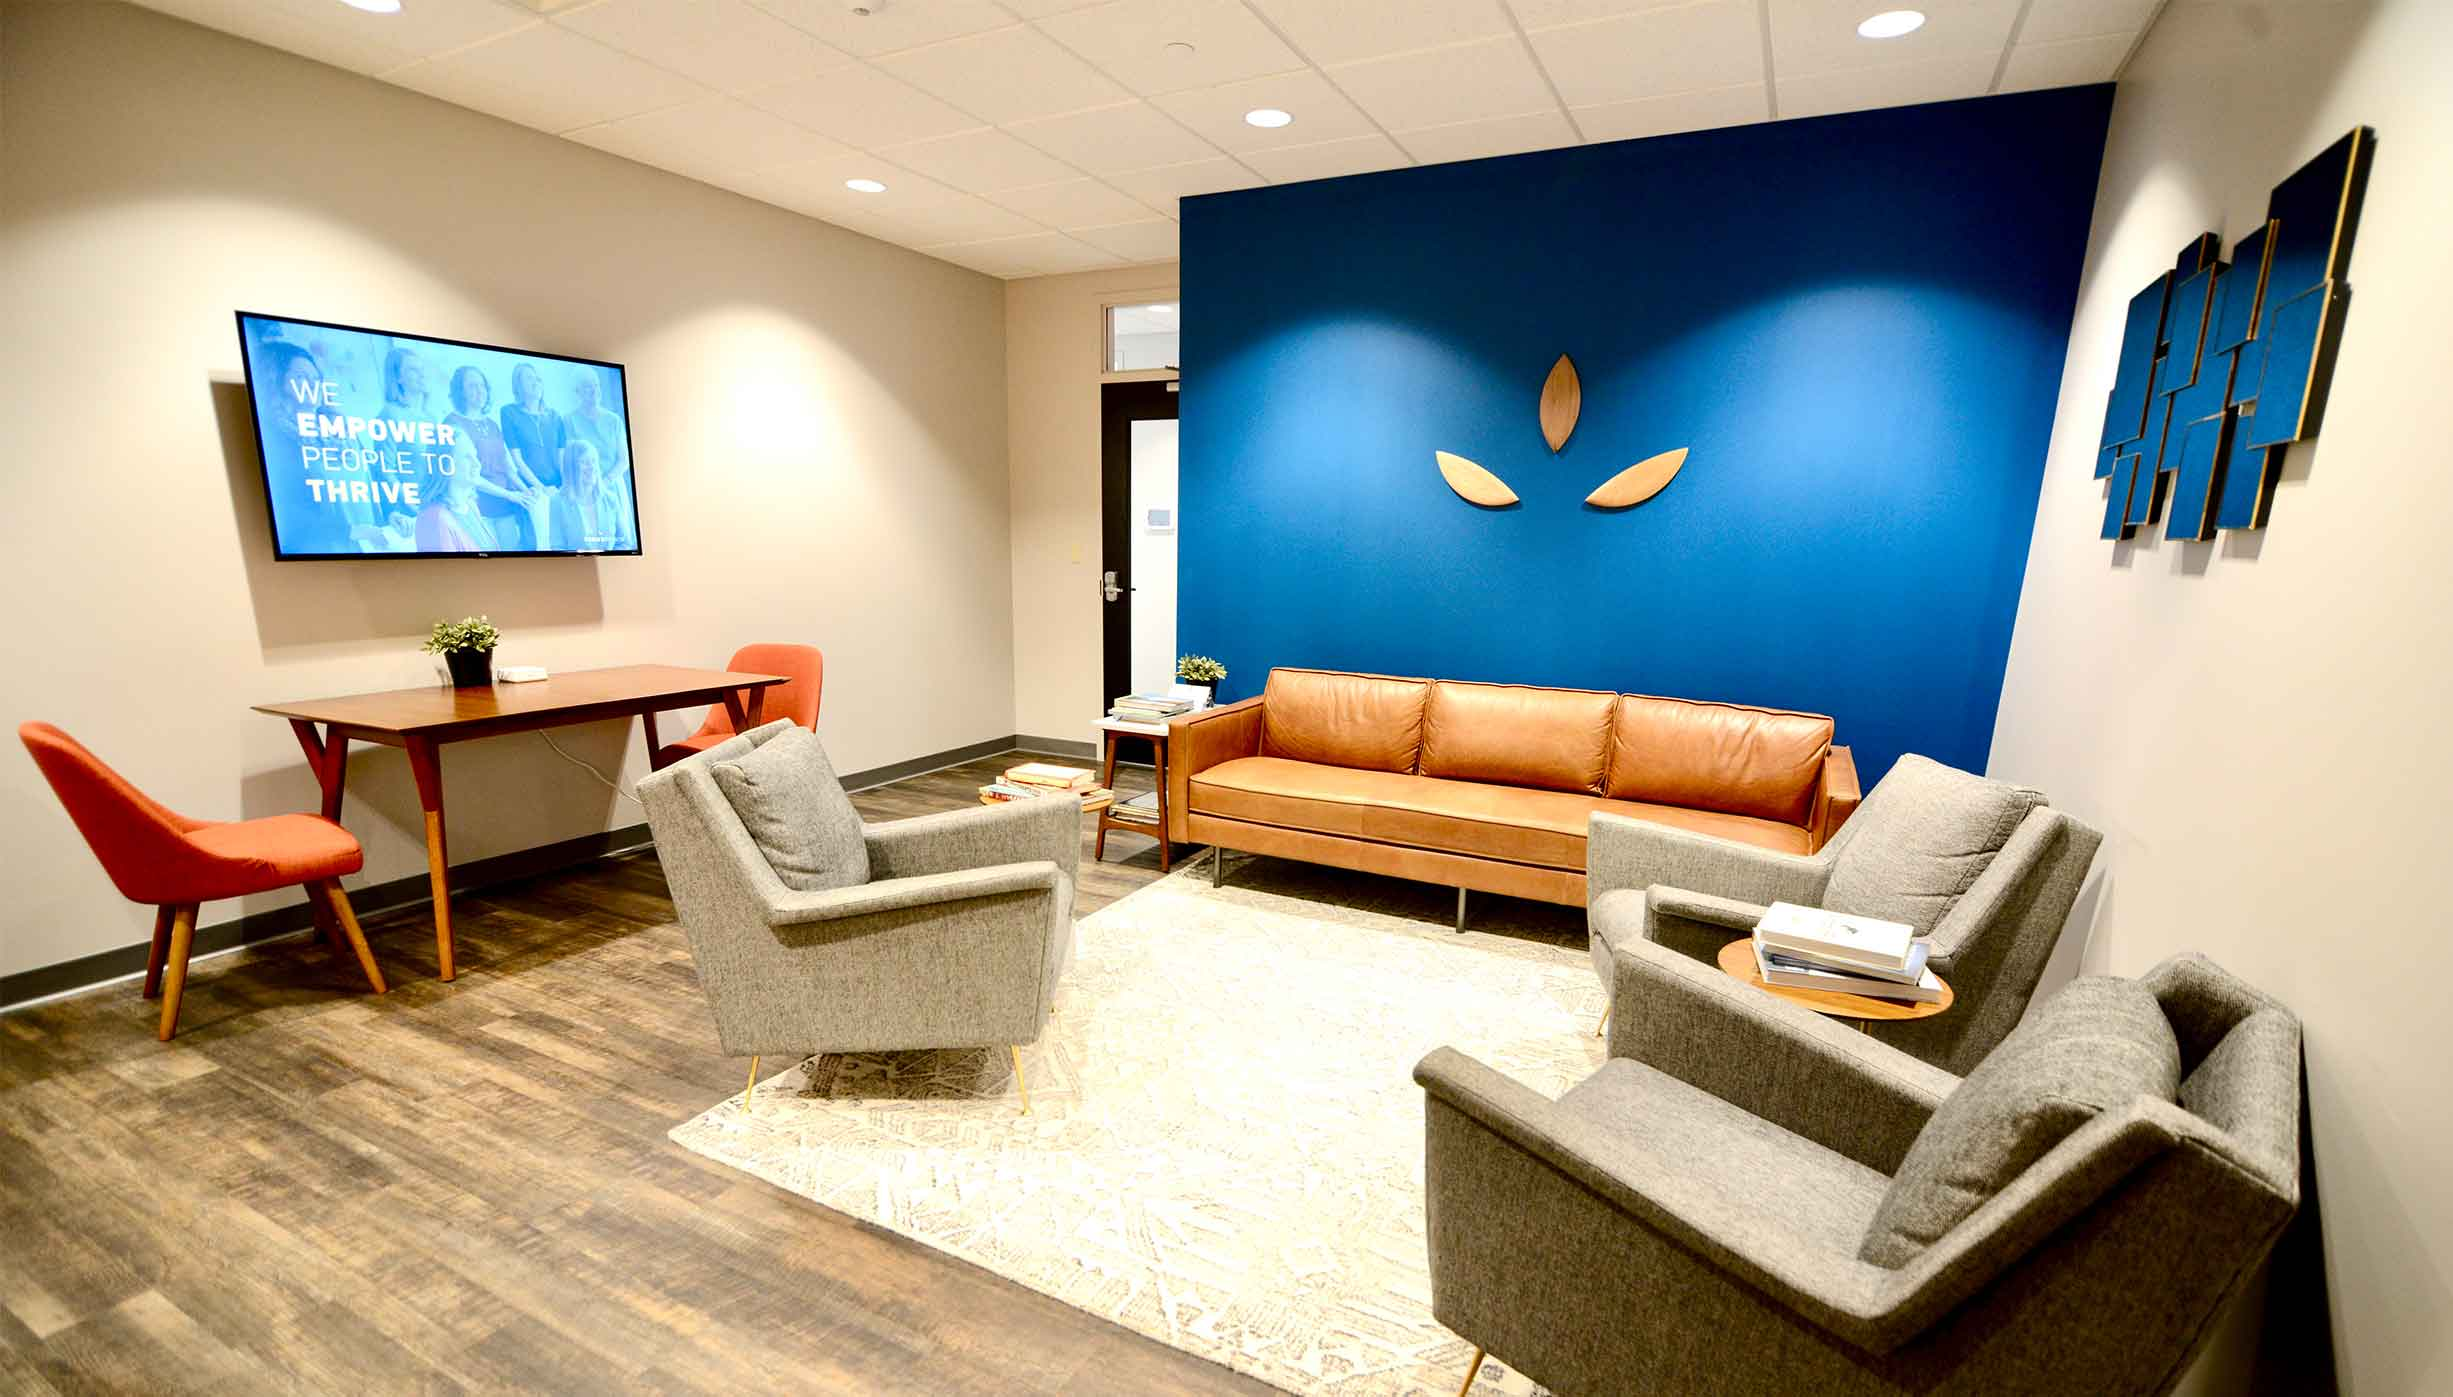 Comfortable and welcoming waiting room area with tables, chairs and couches, wooden and blue elements with rustic modern feel, petals or leaf parts on the wall for the ThrivePointe Counseling logo at Liberty Center office for therapy in Liberty Center, OH 45069